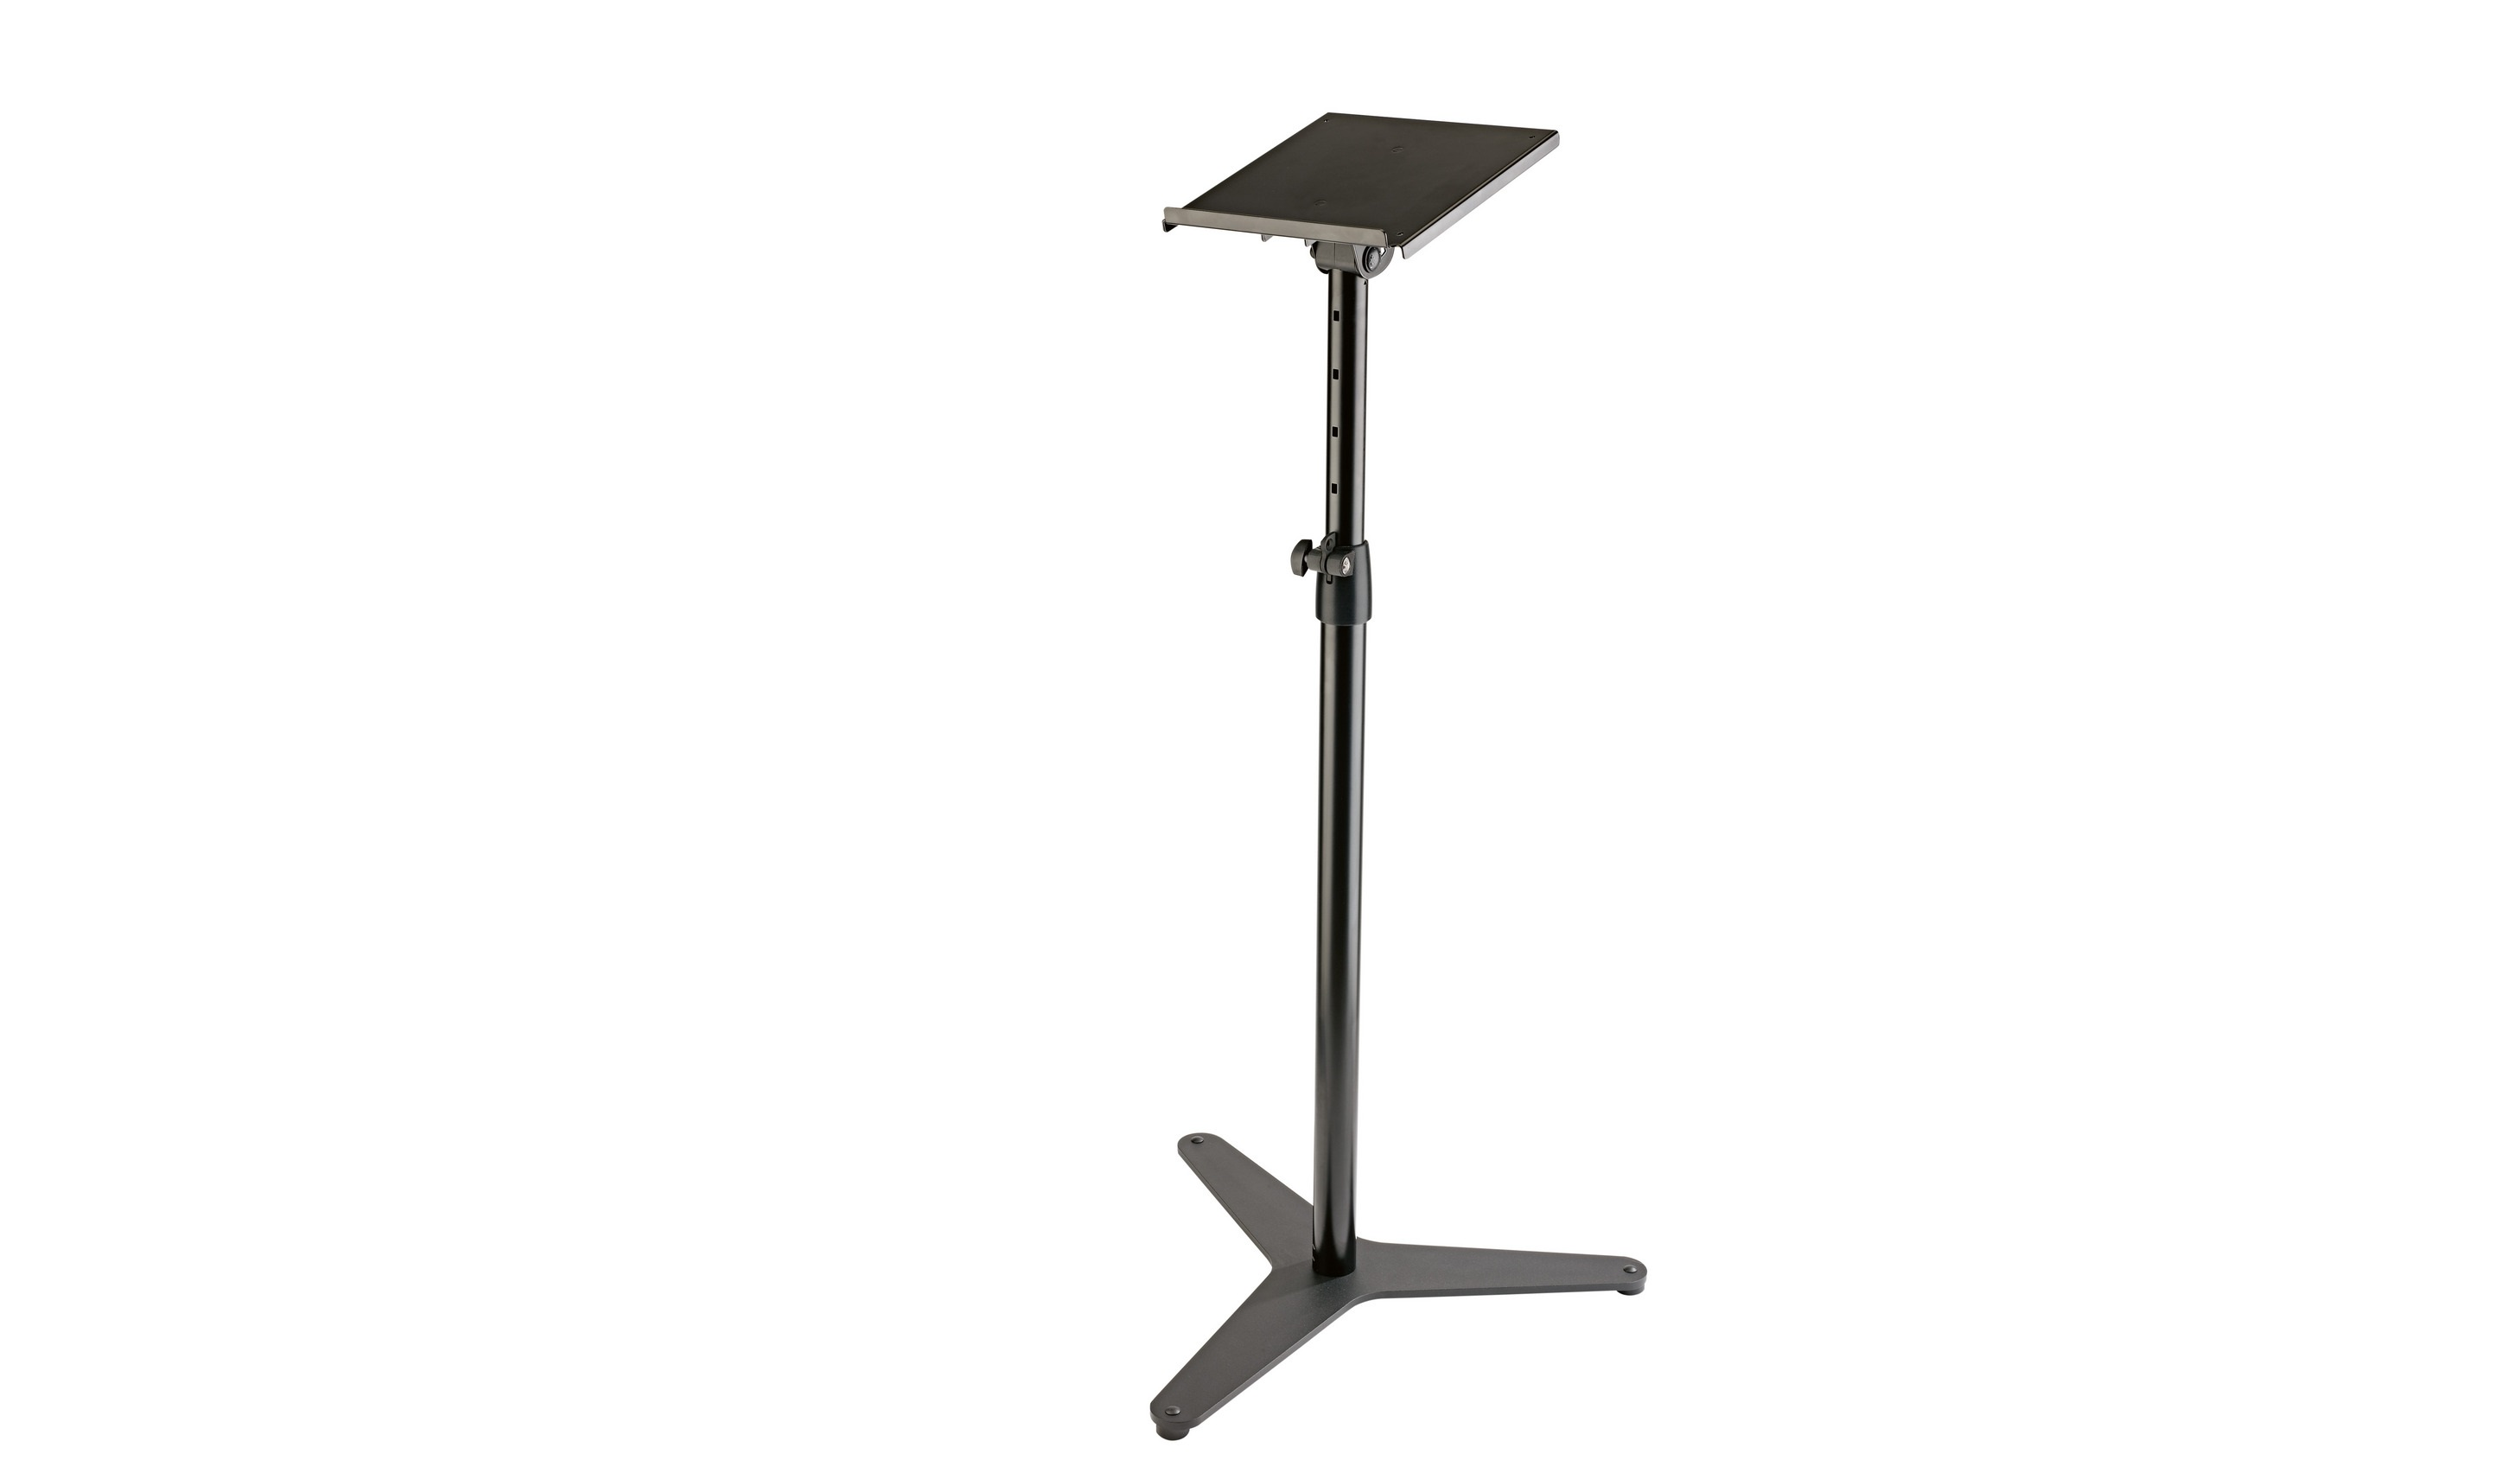 K&M 26754 Monitor stand